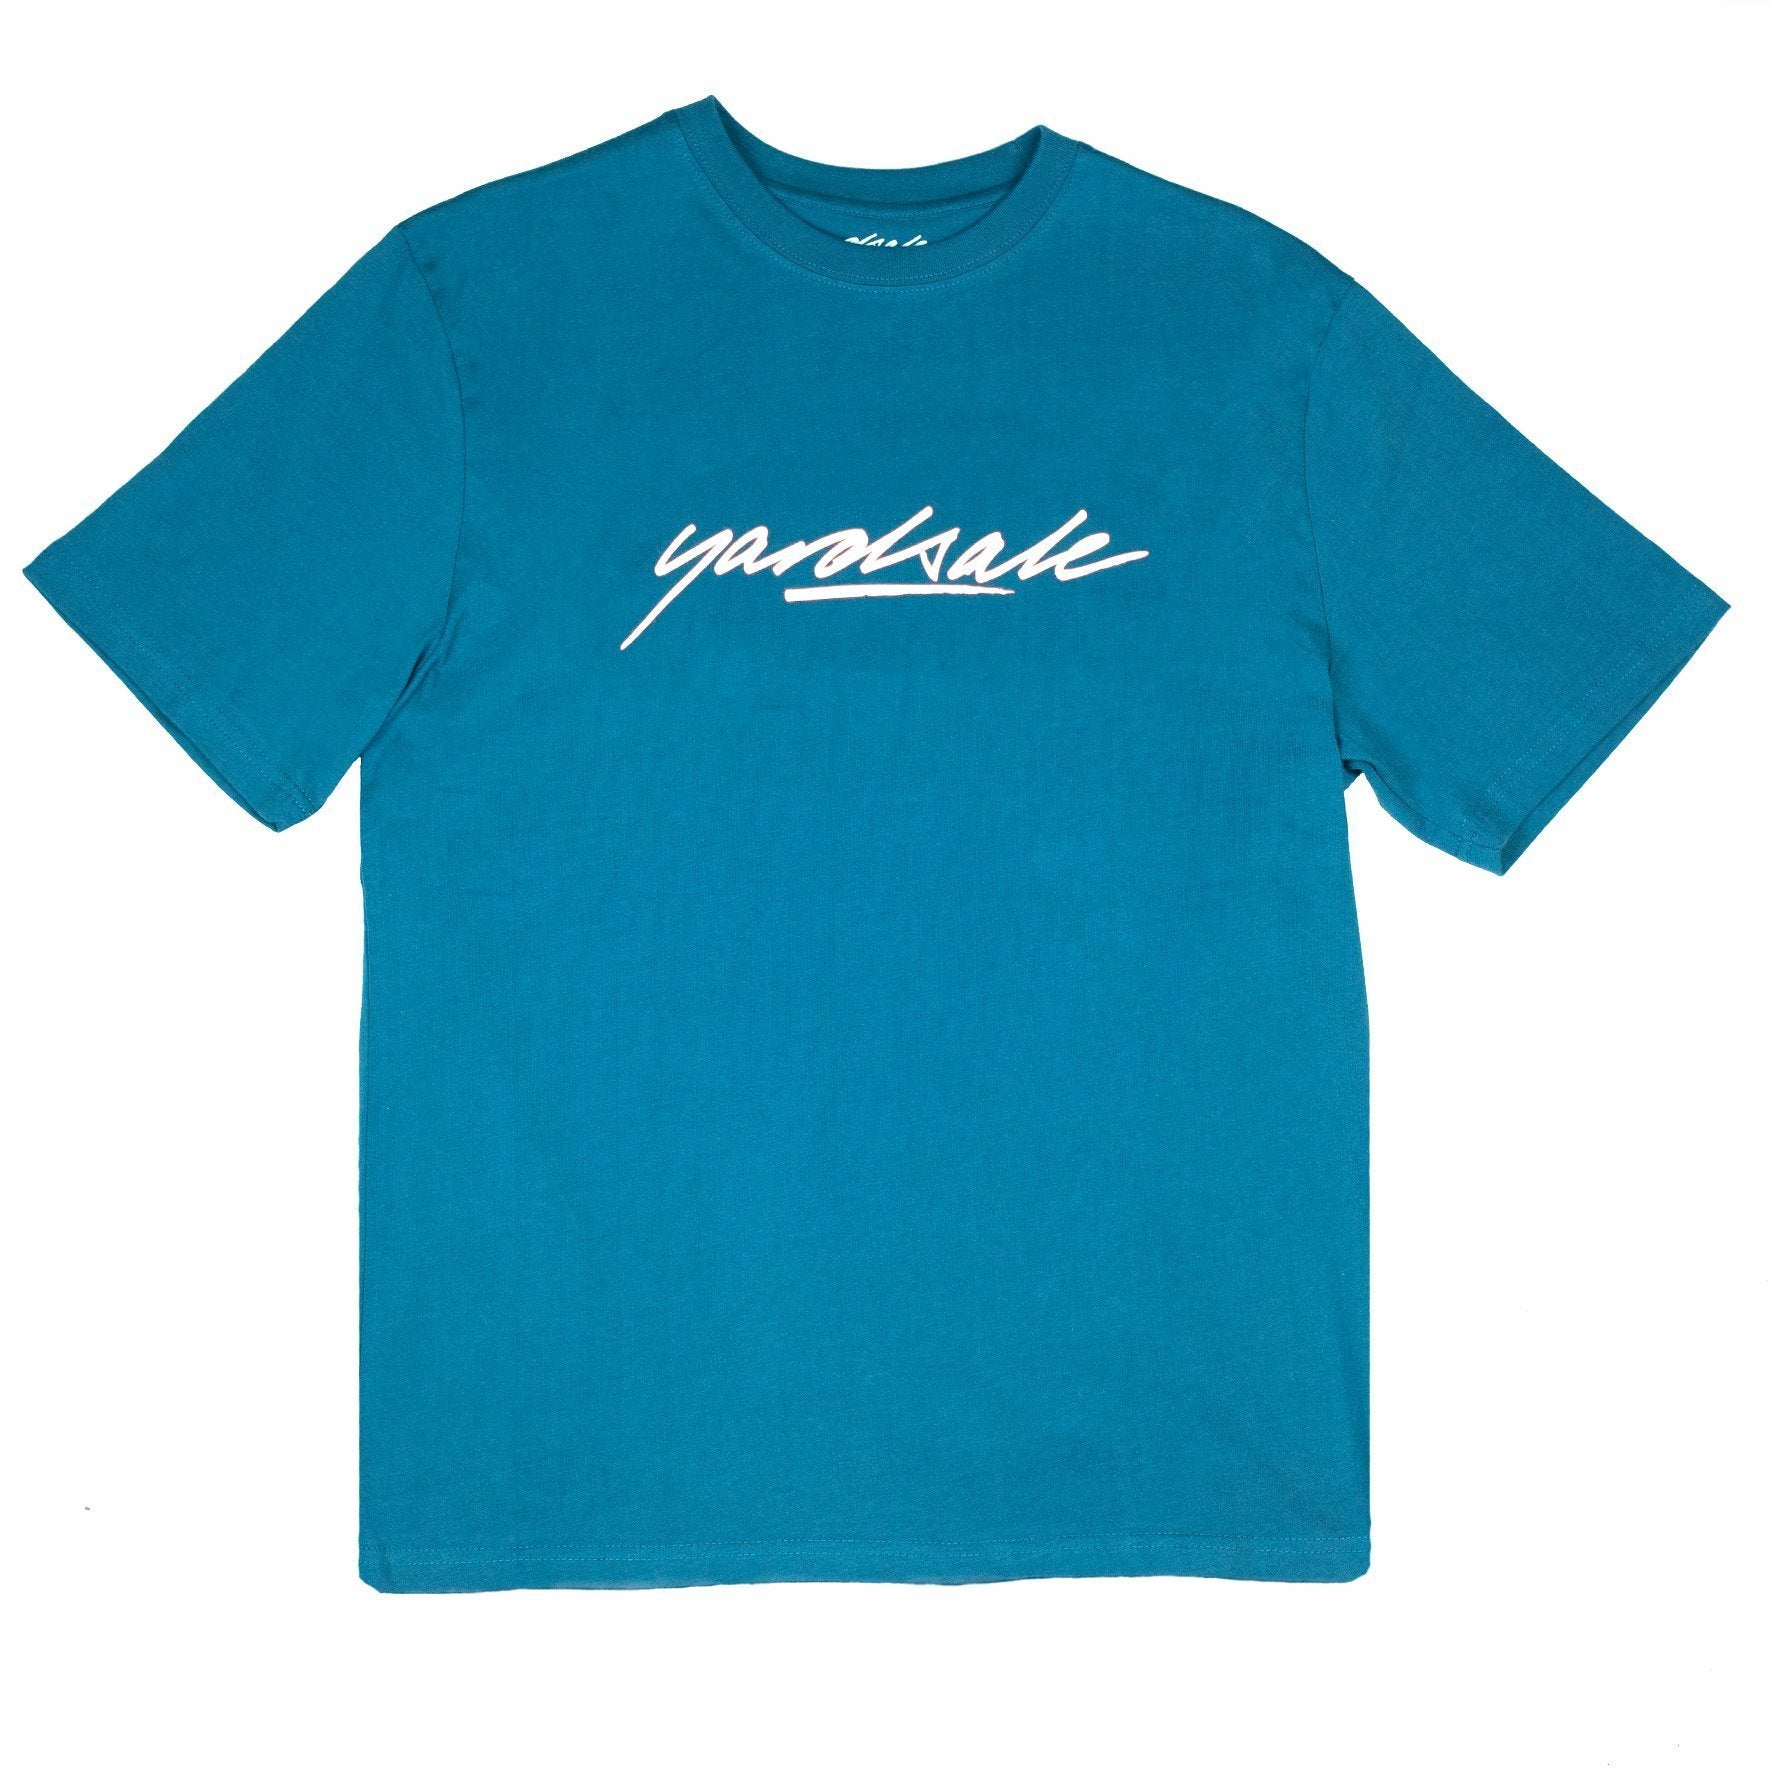 Yardsale Script Tee Product Photo #1